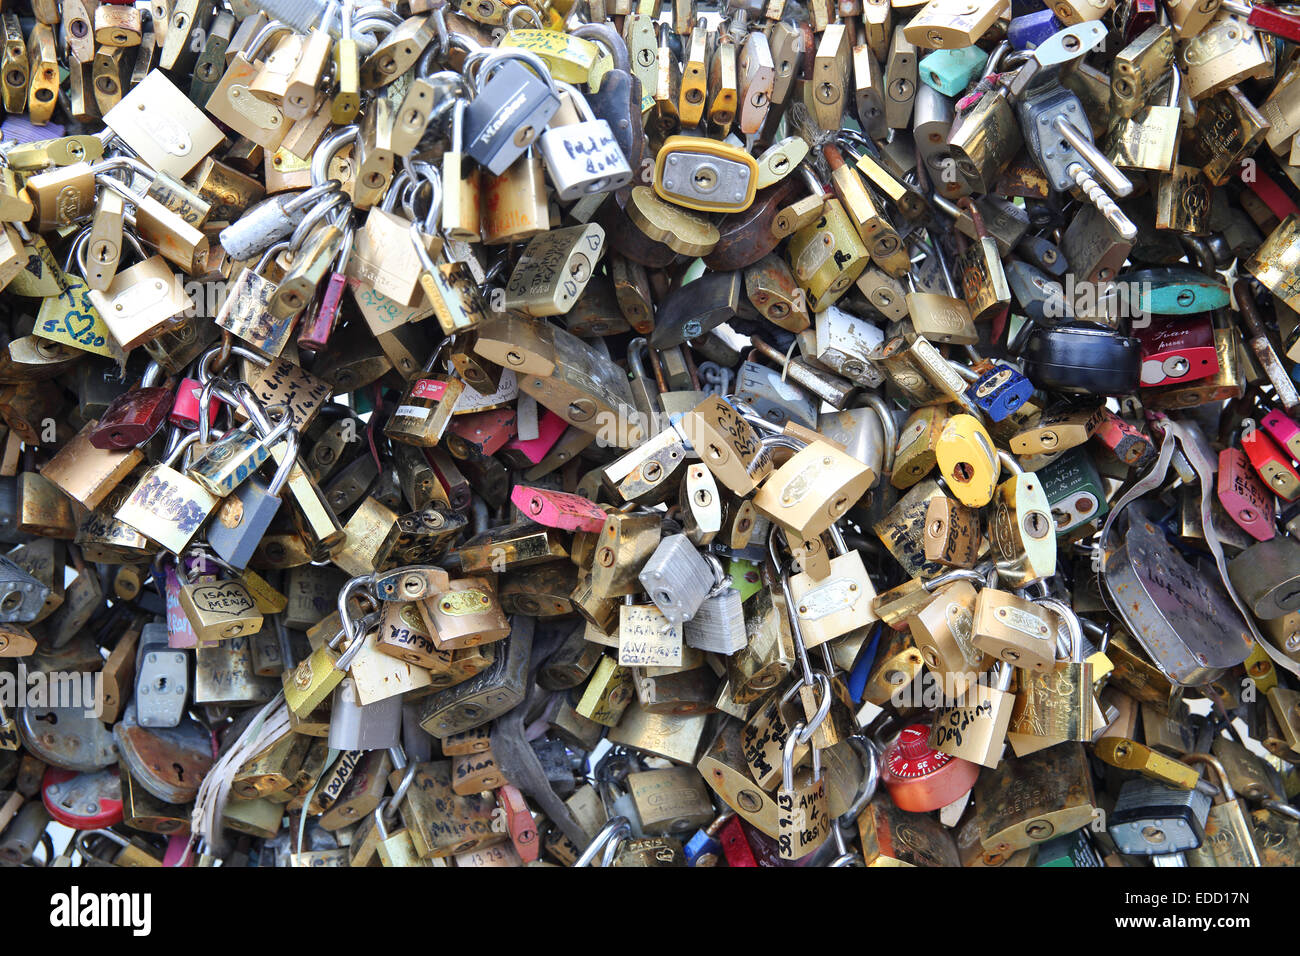 The 'Love lock' bridge in Paris, with it's railings covered in padlocks, the Pont Des Arts, in France, - Stock Image